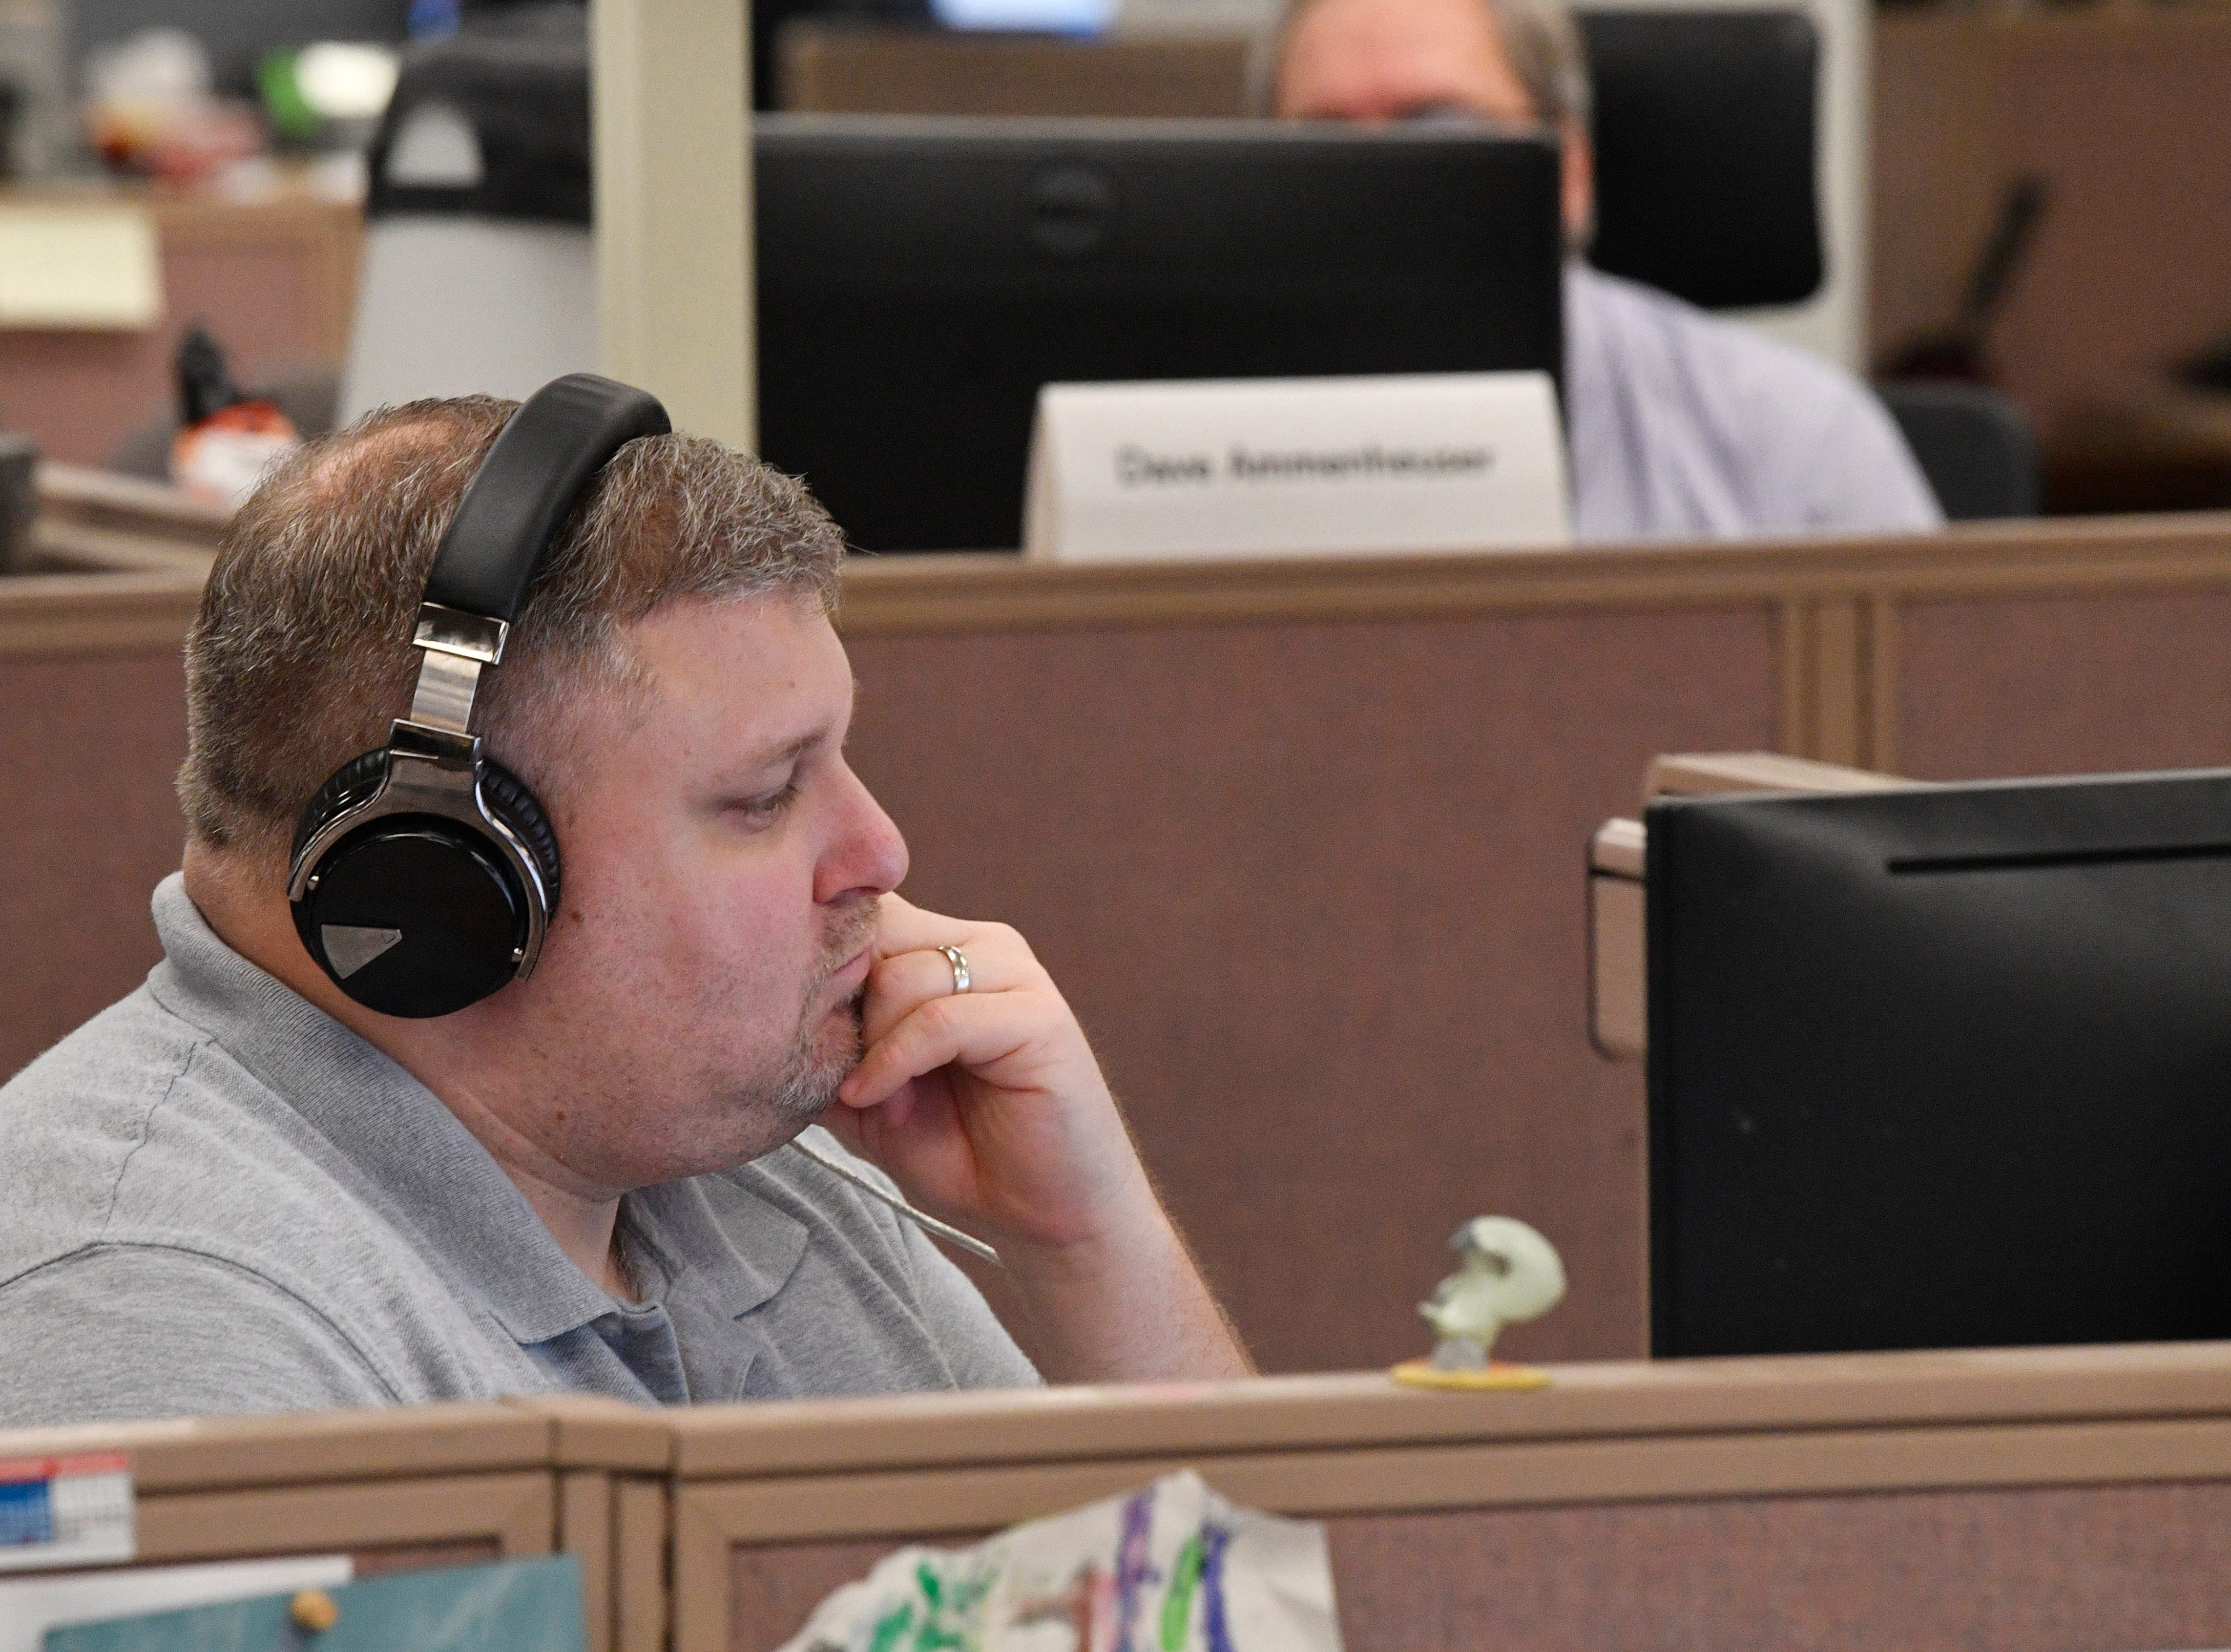 Producer Brian Minges works in The Tennessean newsroom Wednesday, Jan. 2, 2019.